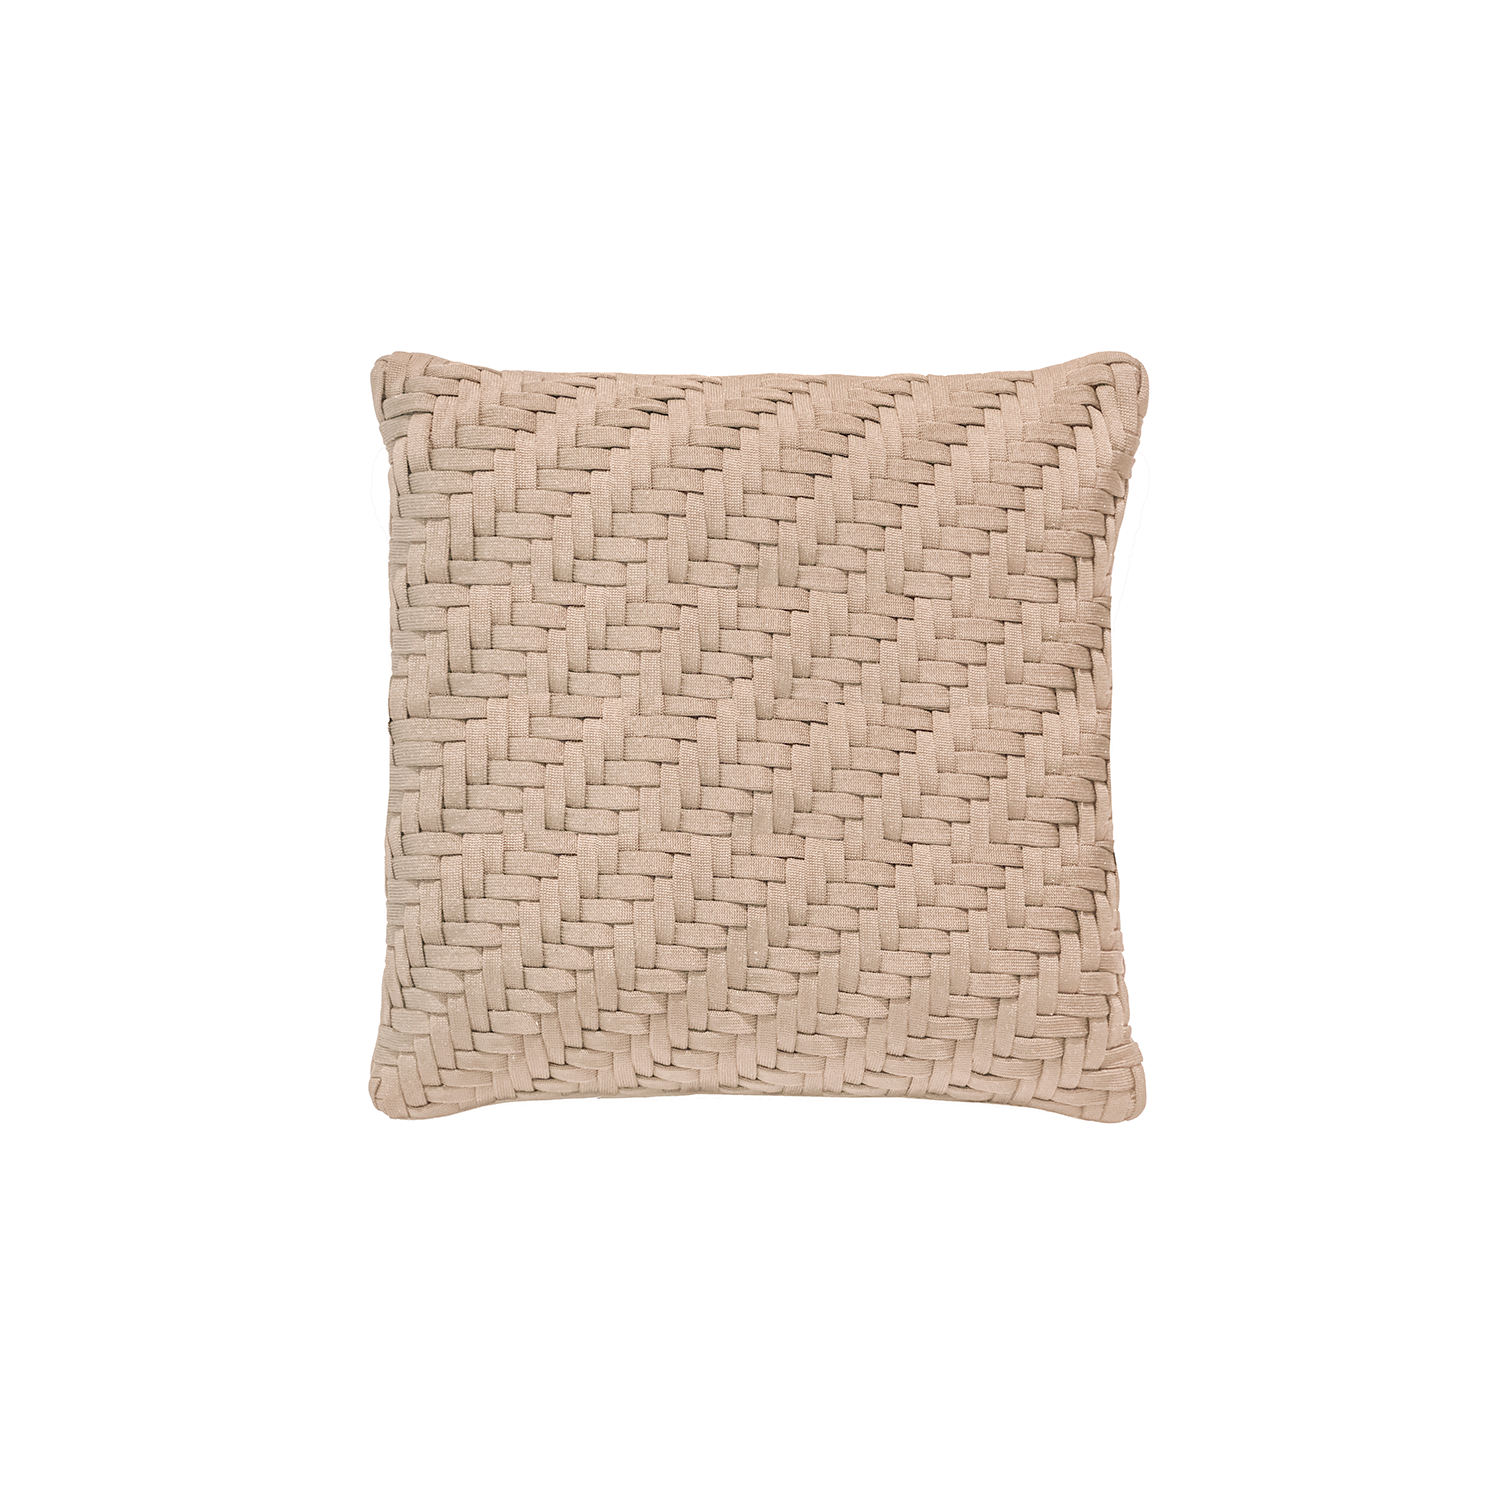 Asper Neo Cushion Square - The Asper Neo Cushion is carefully knitted within a trained community of women that found in their craft a way to provide for their families. The outdoor collection is made with synthetic fibres, resistant to weather exposure. The use of neoprene brings comfort and technology to the cushions.  The front panel is in neoprene combined with hand woven nautical cord, made in Brazil.  The inner cushion is in Hollow Fibre, made in the UK.  Please enquire for more information and see colour chart for reference.  | Matter of Stuff